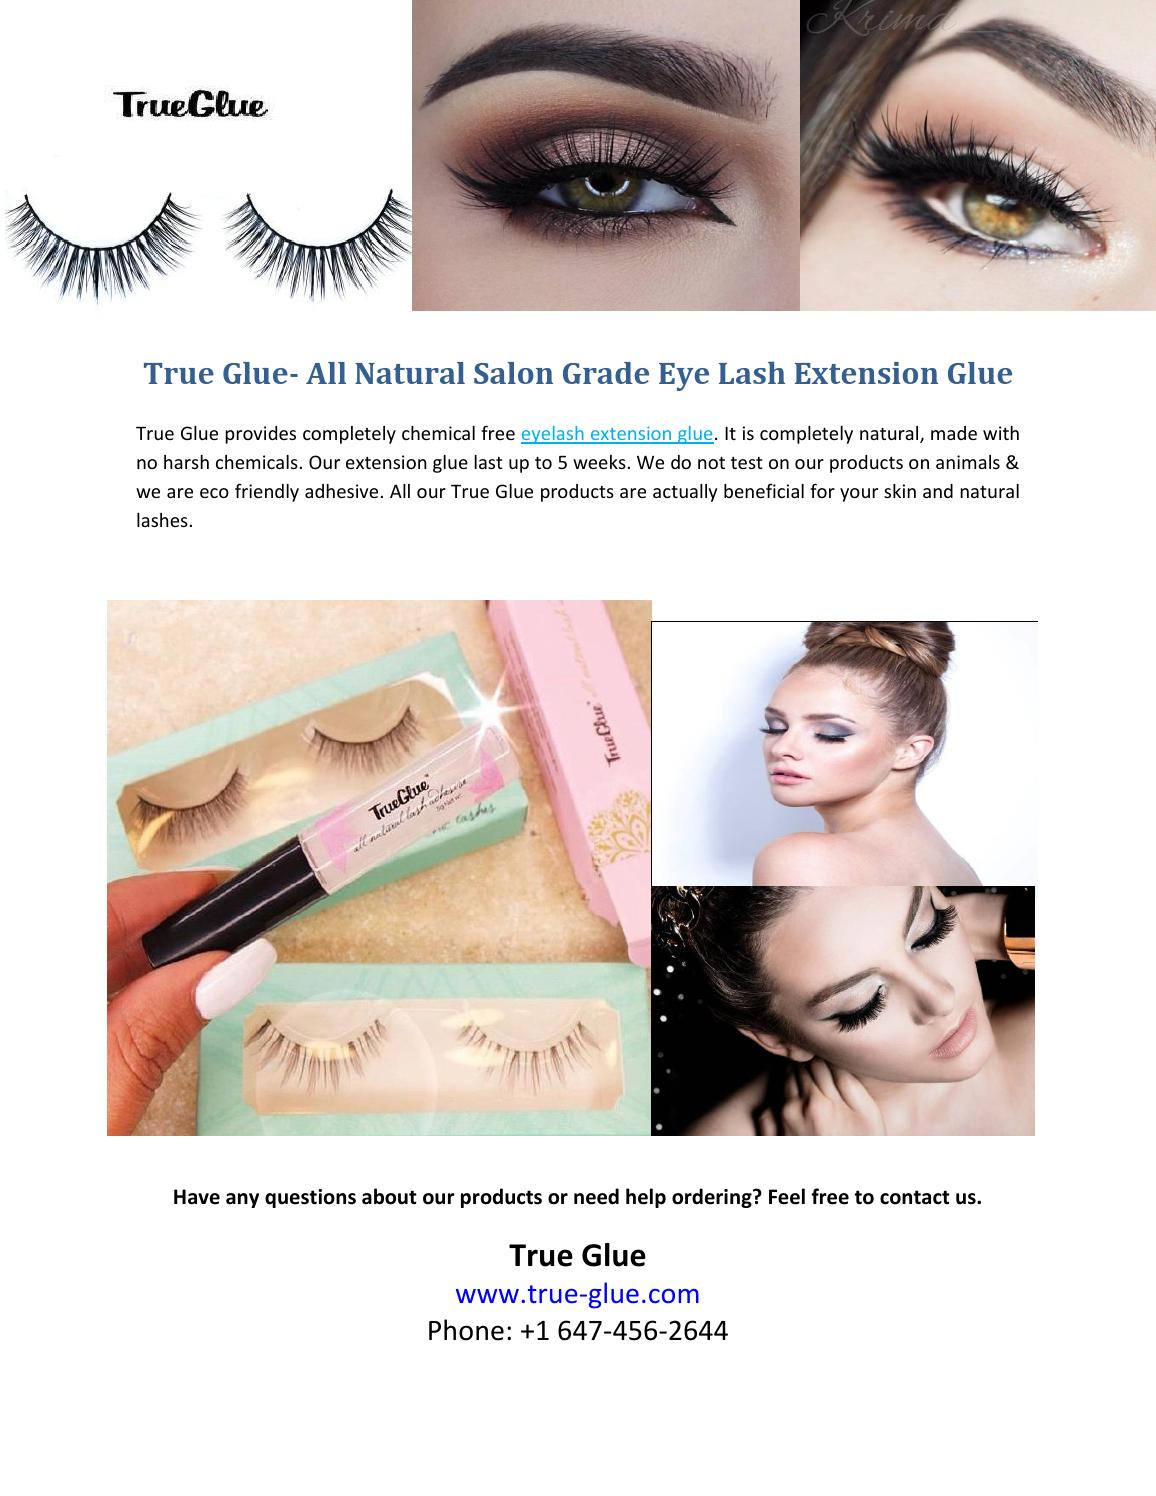 91a4881beca True Glue - All Natural Salon Grade Eye Lash Extension Glue by PCounselling  - issuu